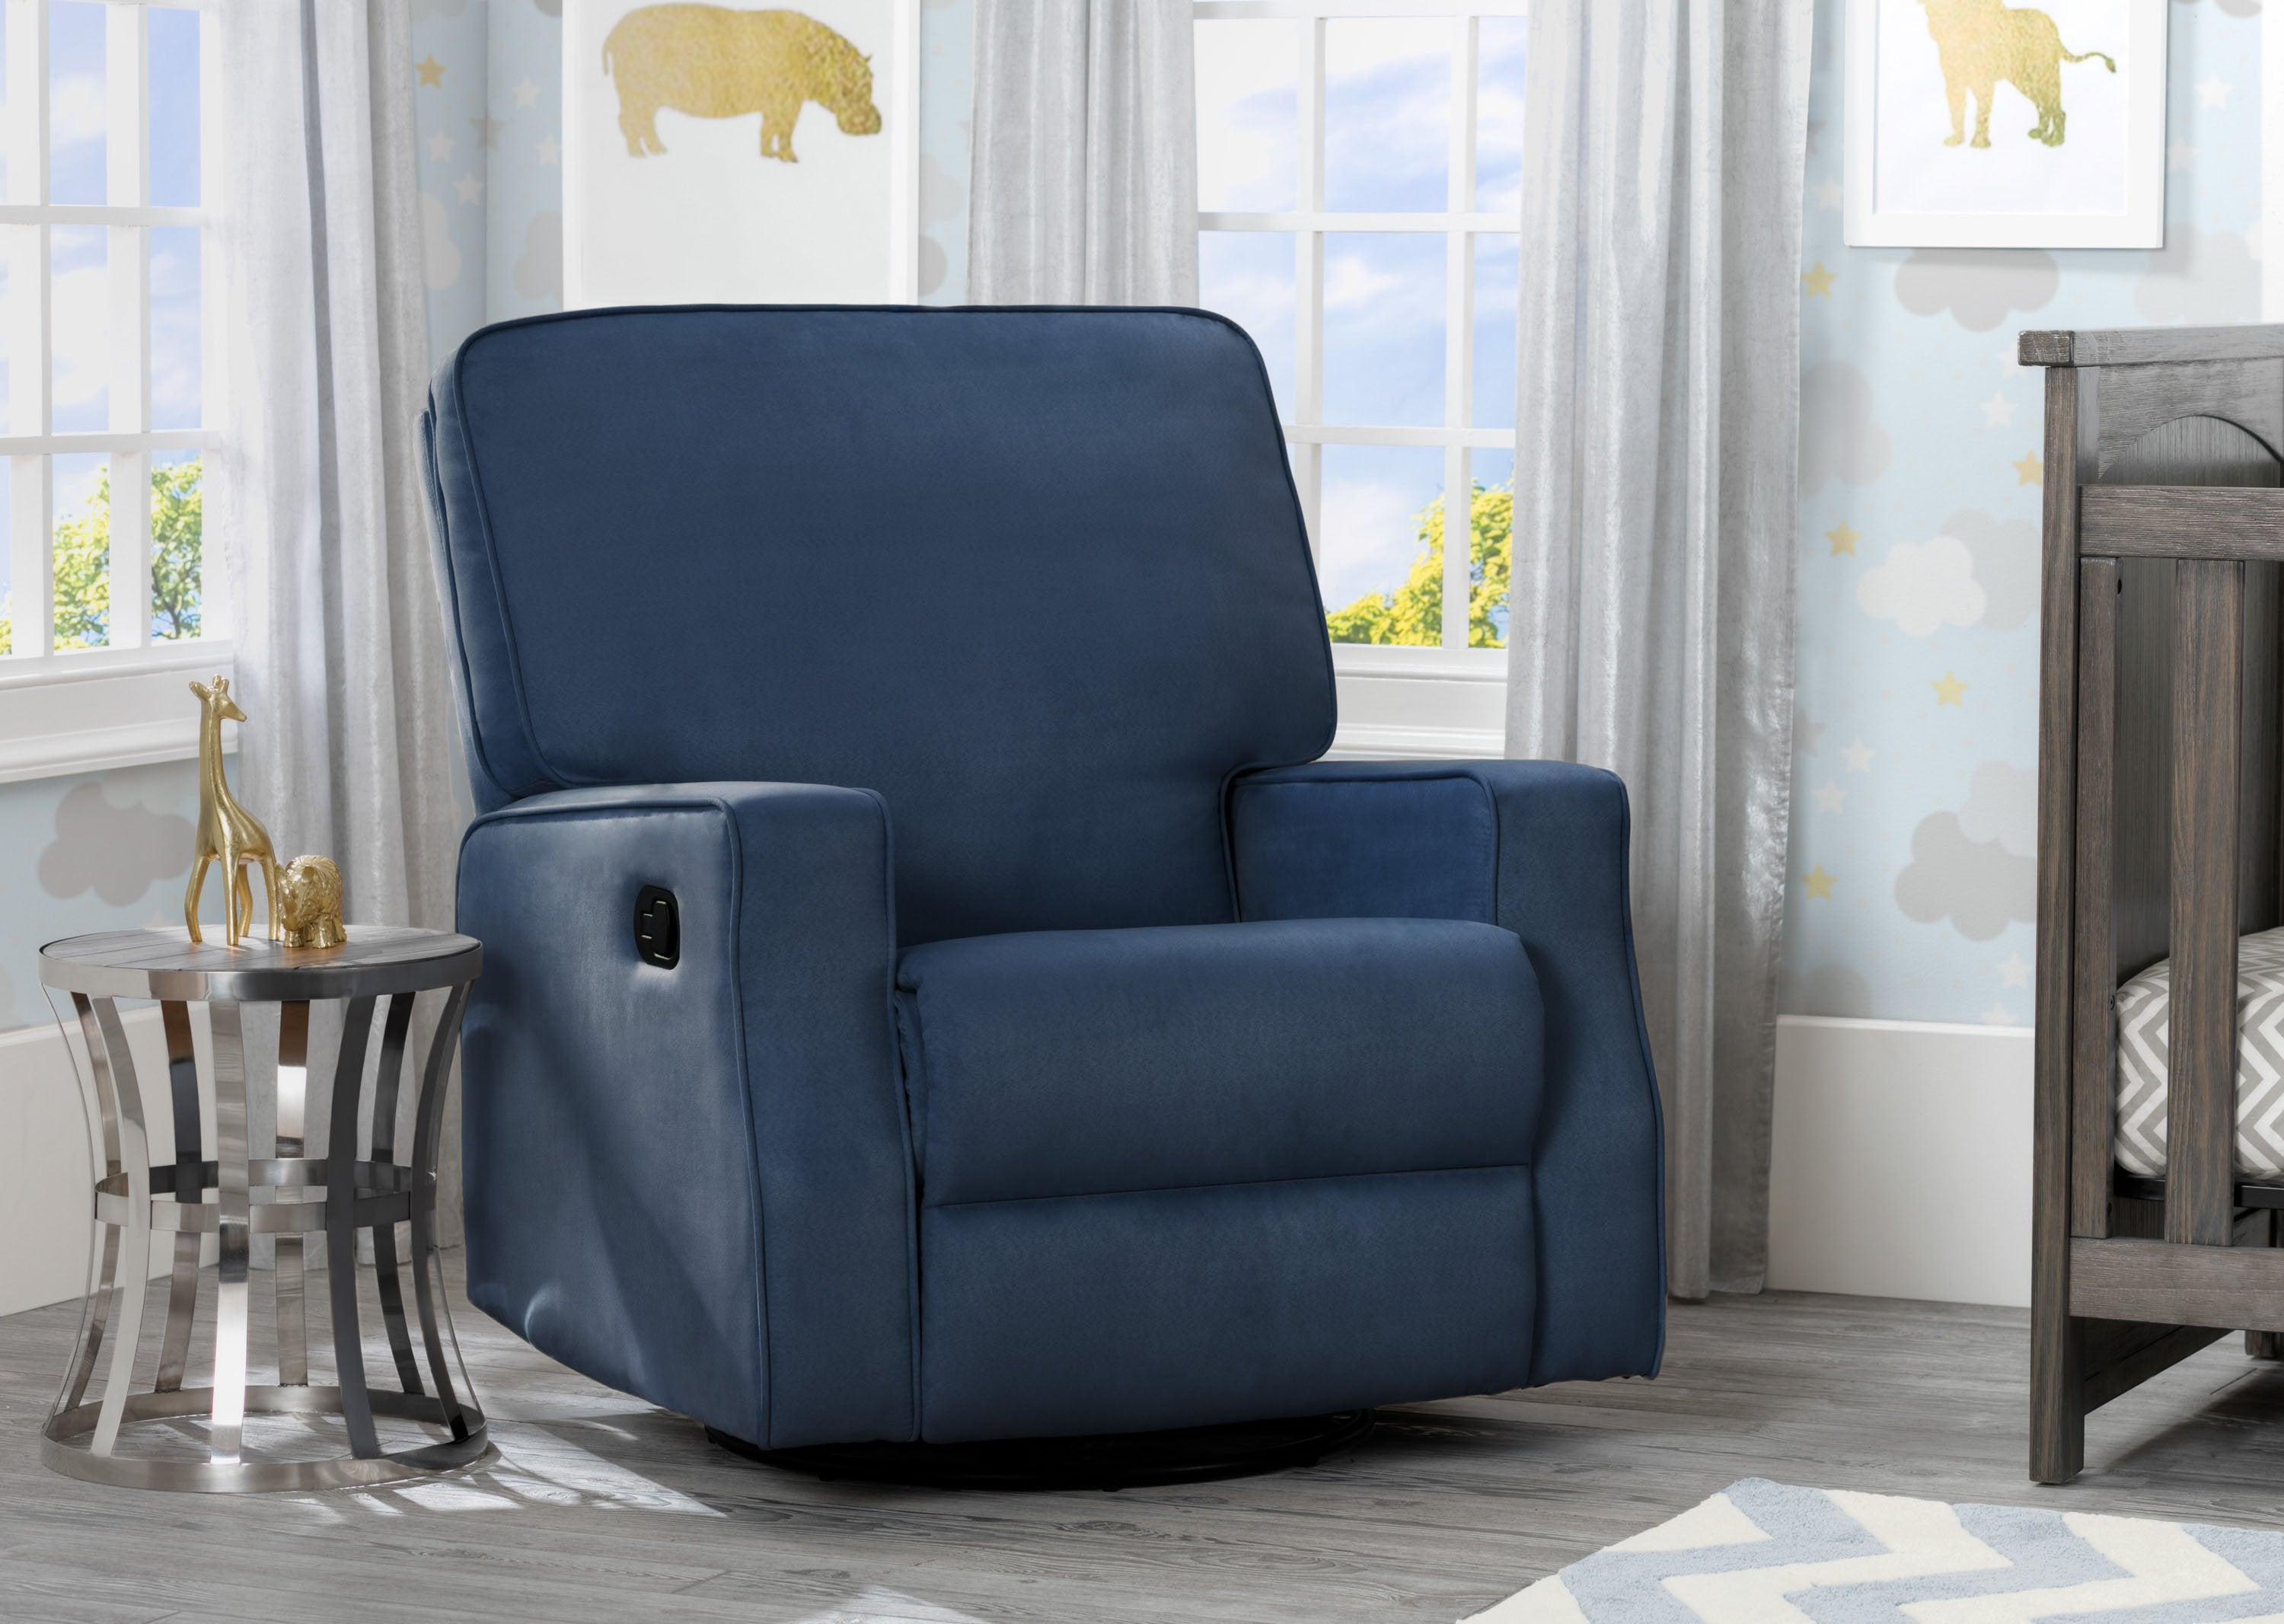 kitchen club fabric dark chair navy amazon dp declan recliner blue dining com